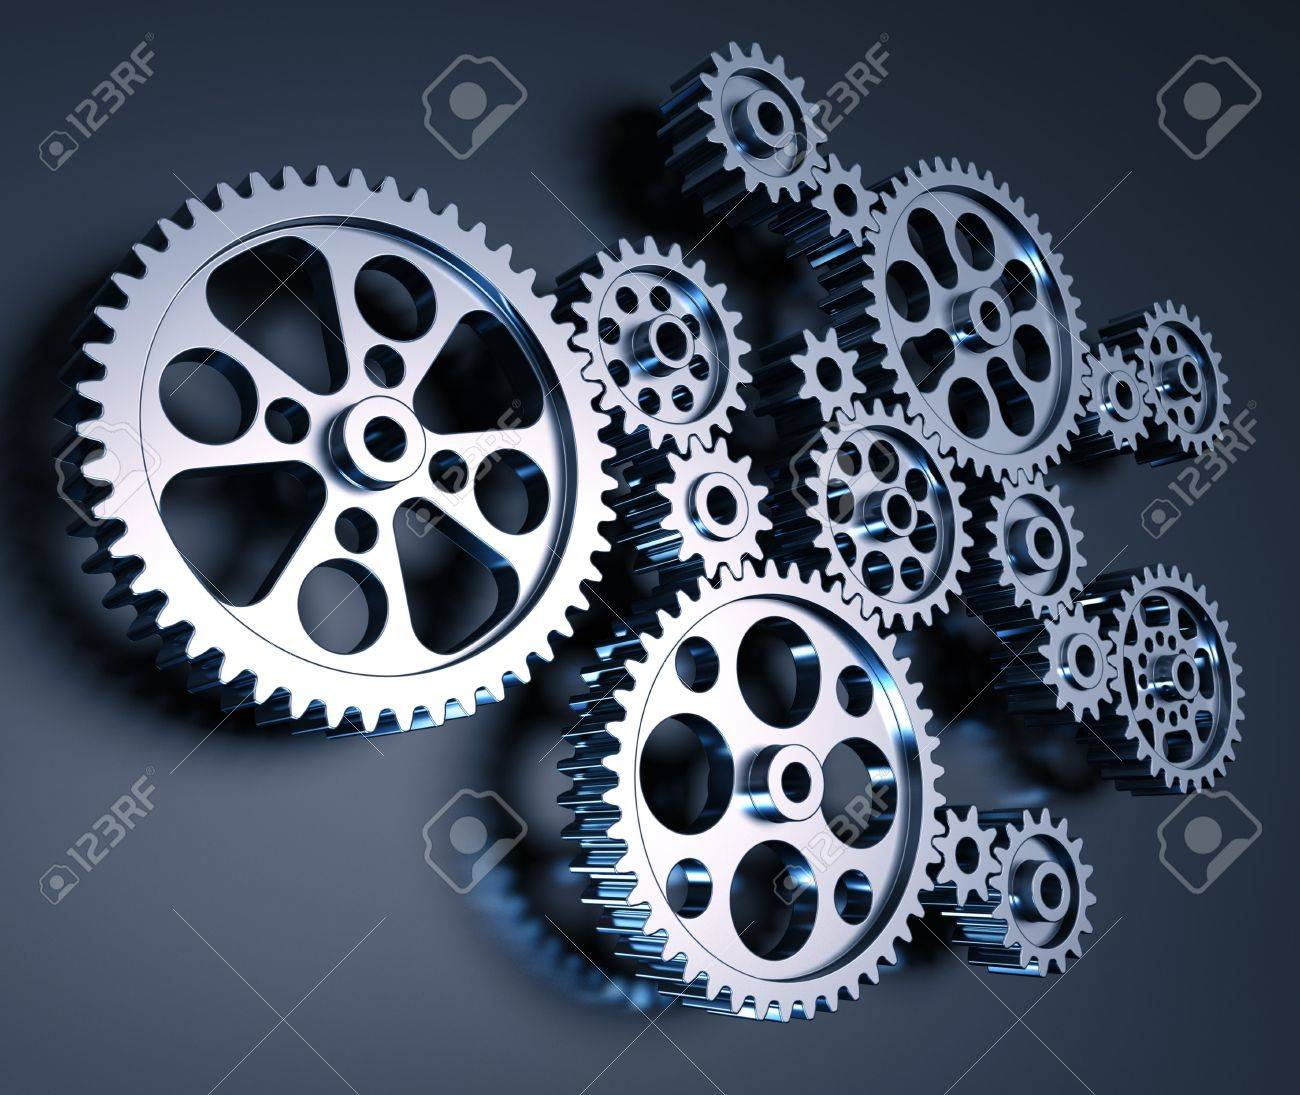 Set of gears interconnected forming a machine concept. - 7315165